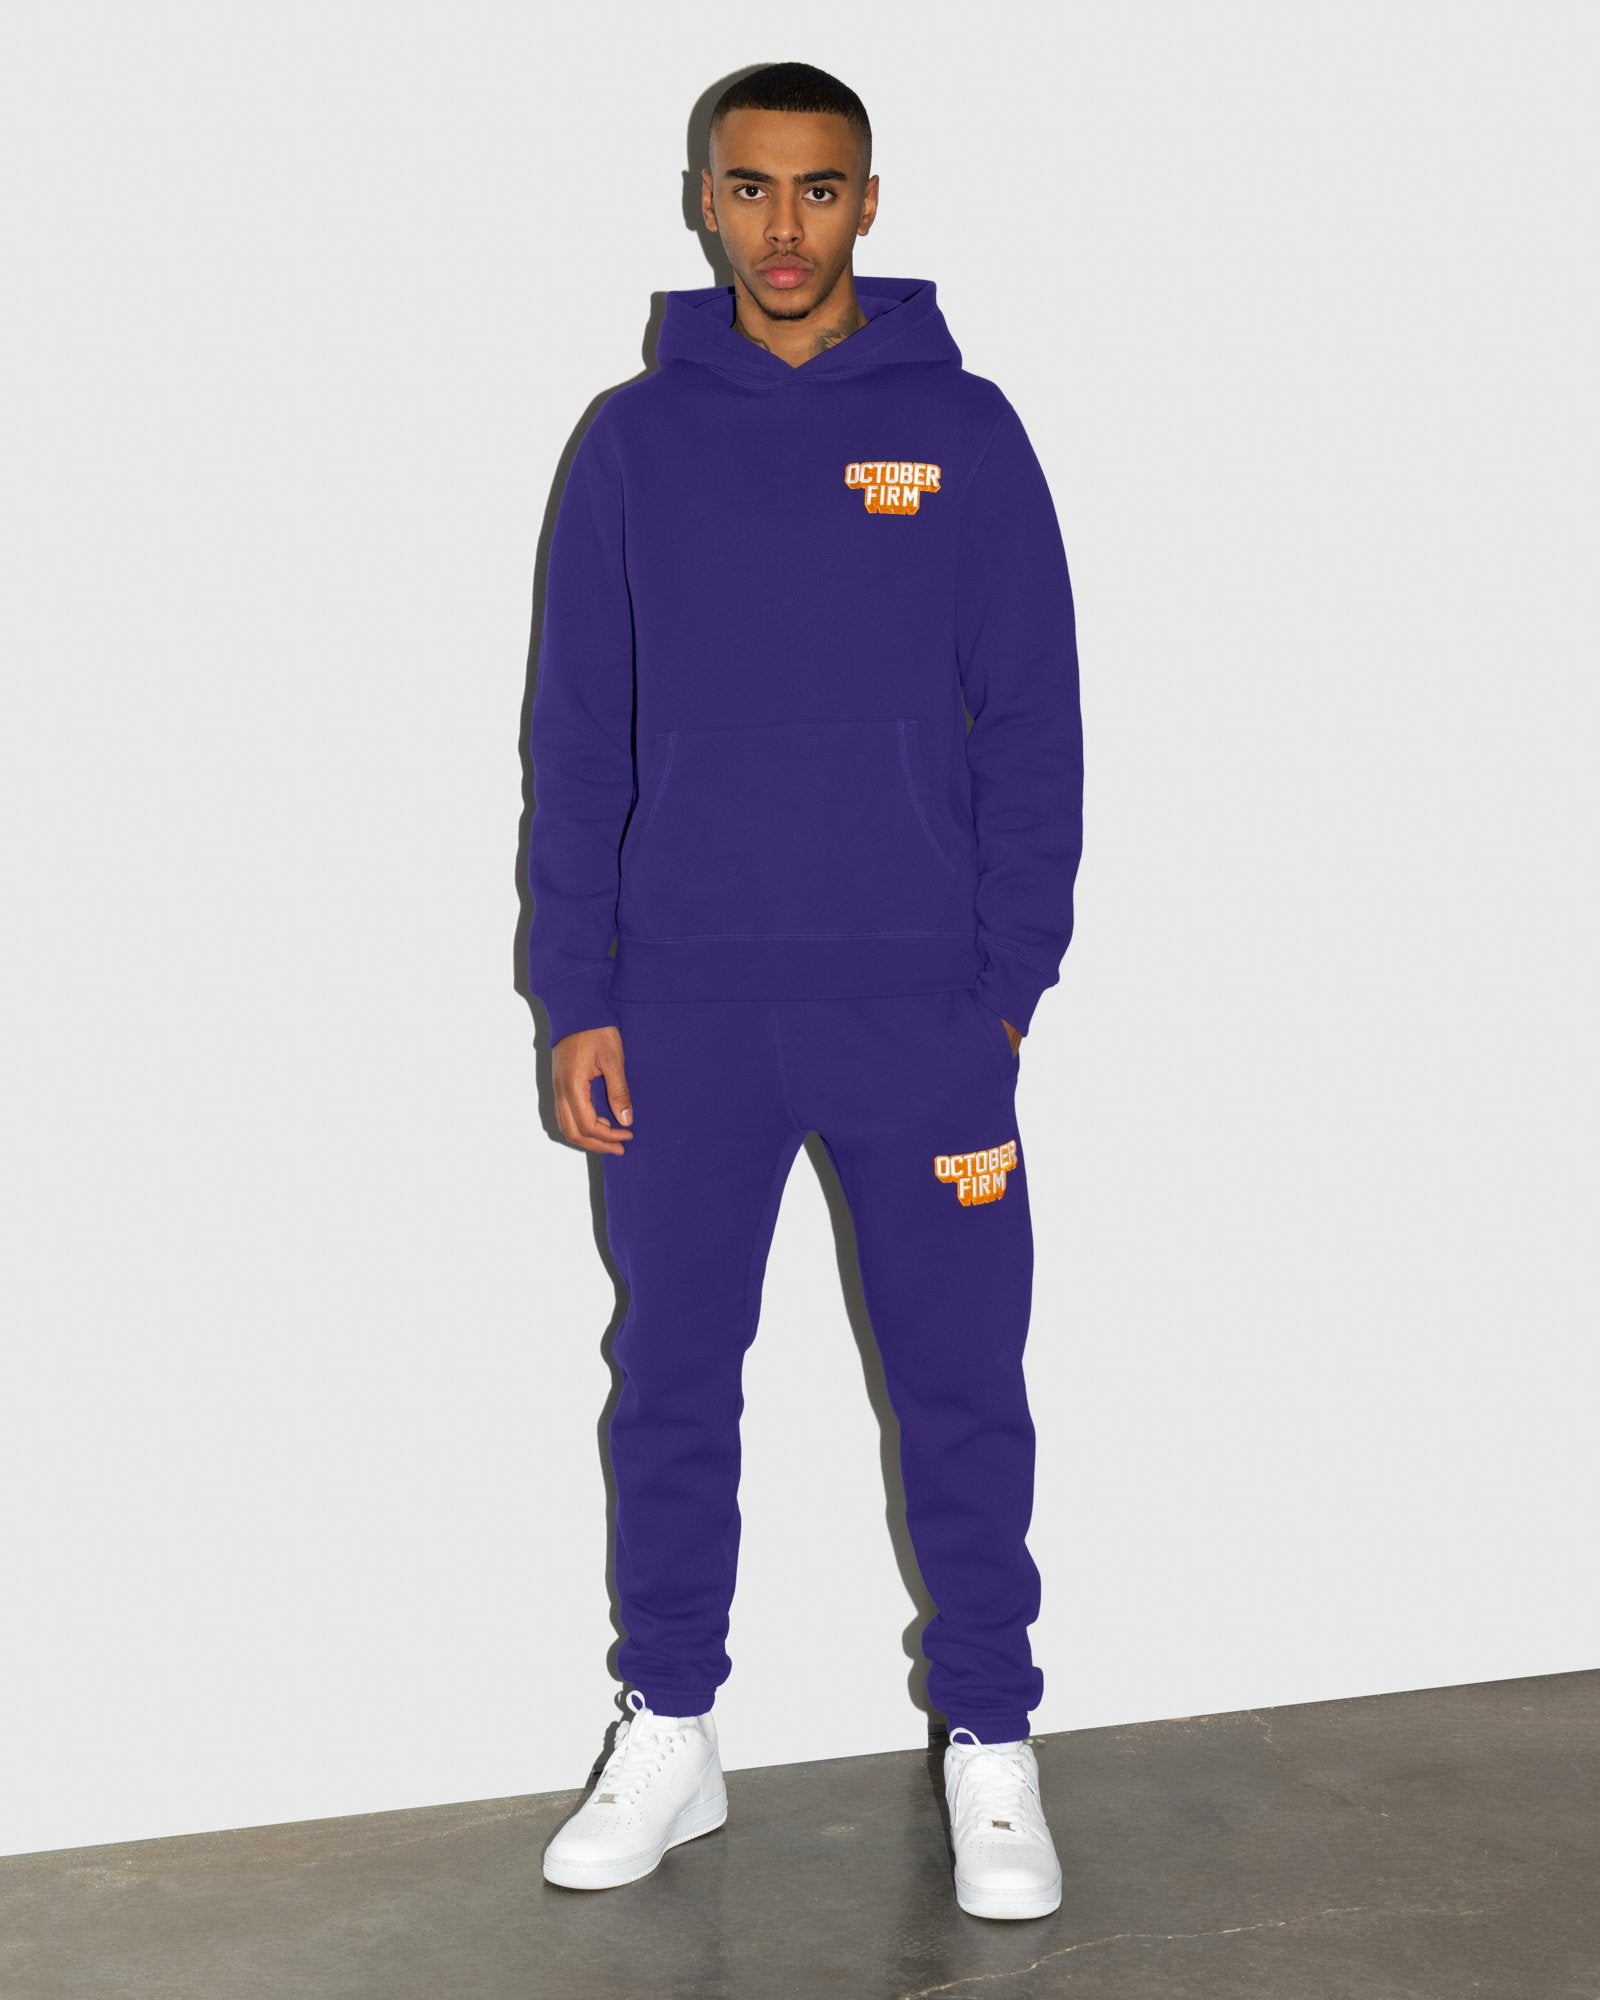 OCTOBER FIRM SHADOW SWEATPANT - PURPLE IMAGE #2